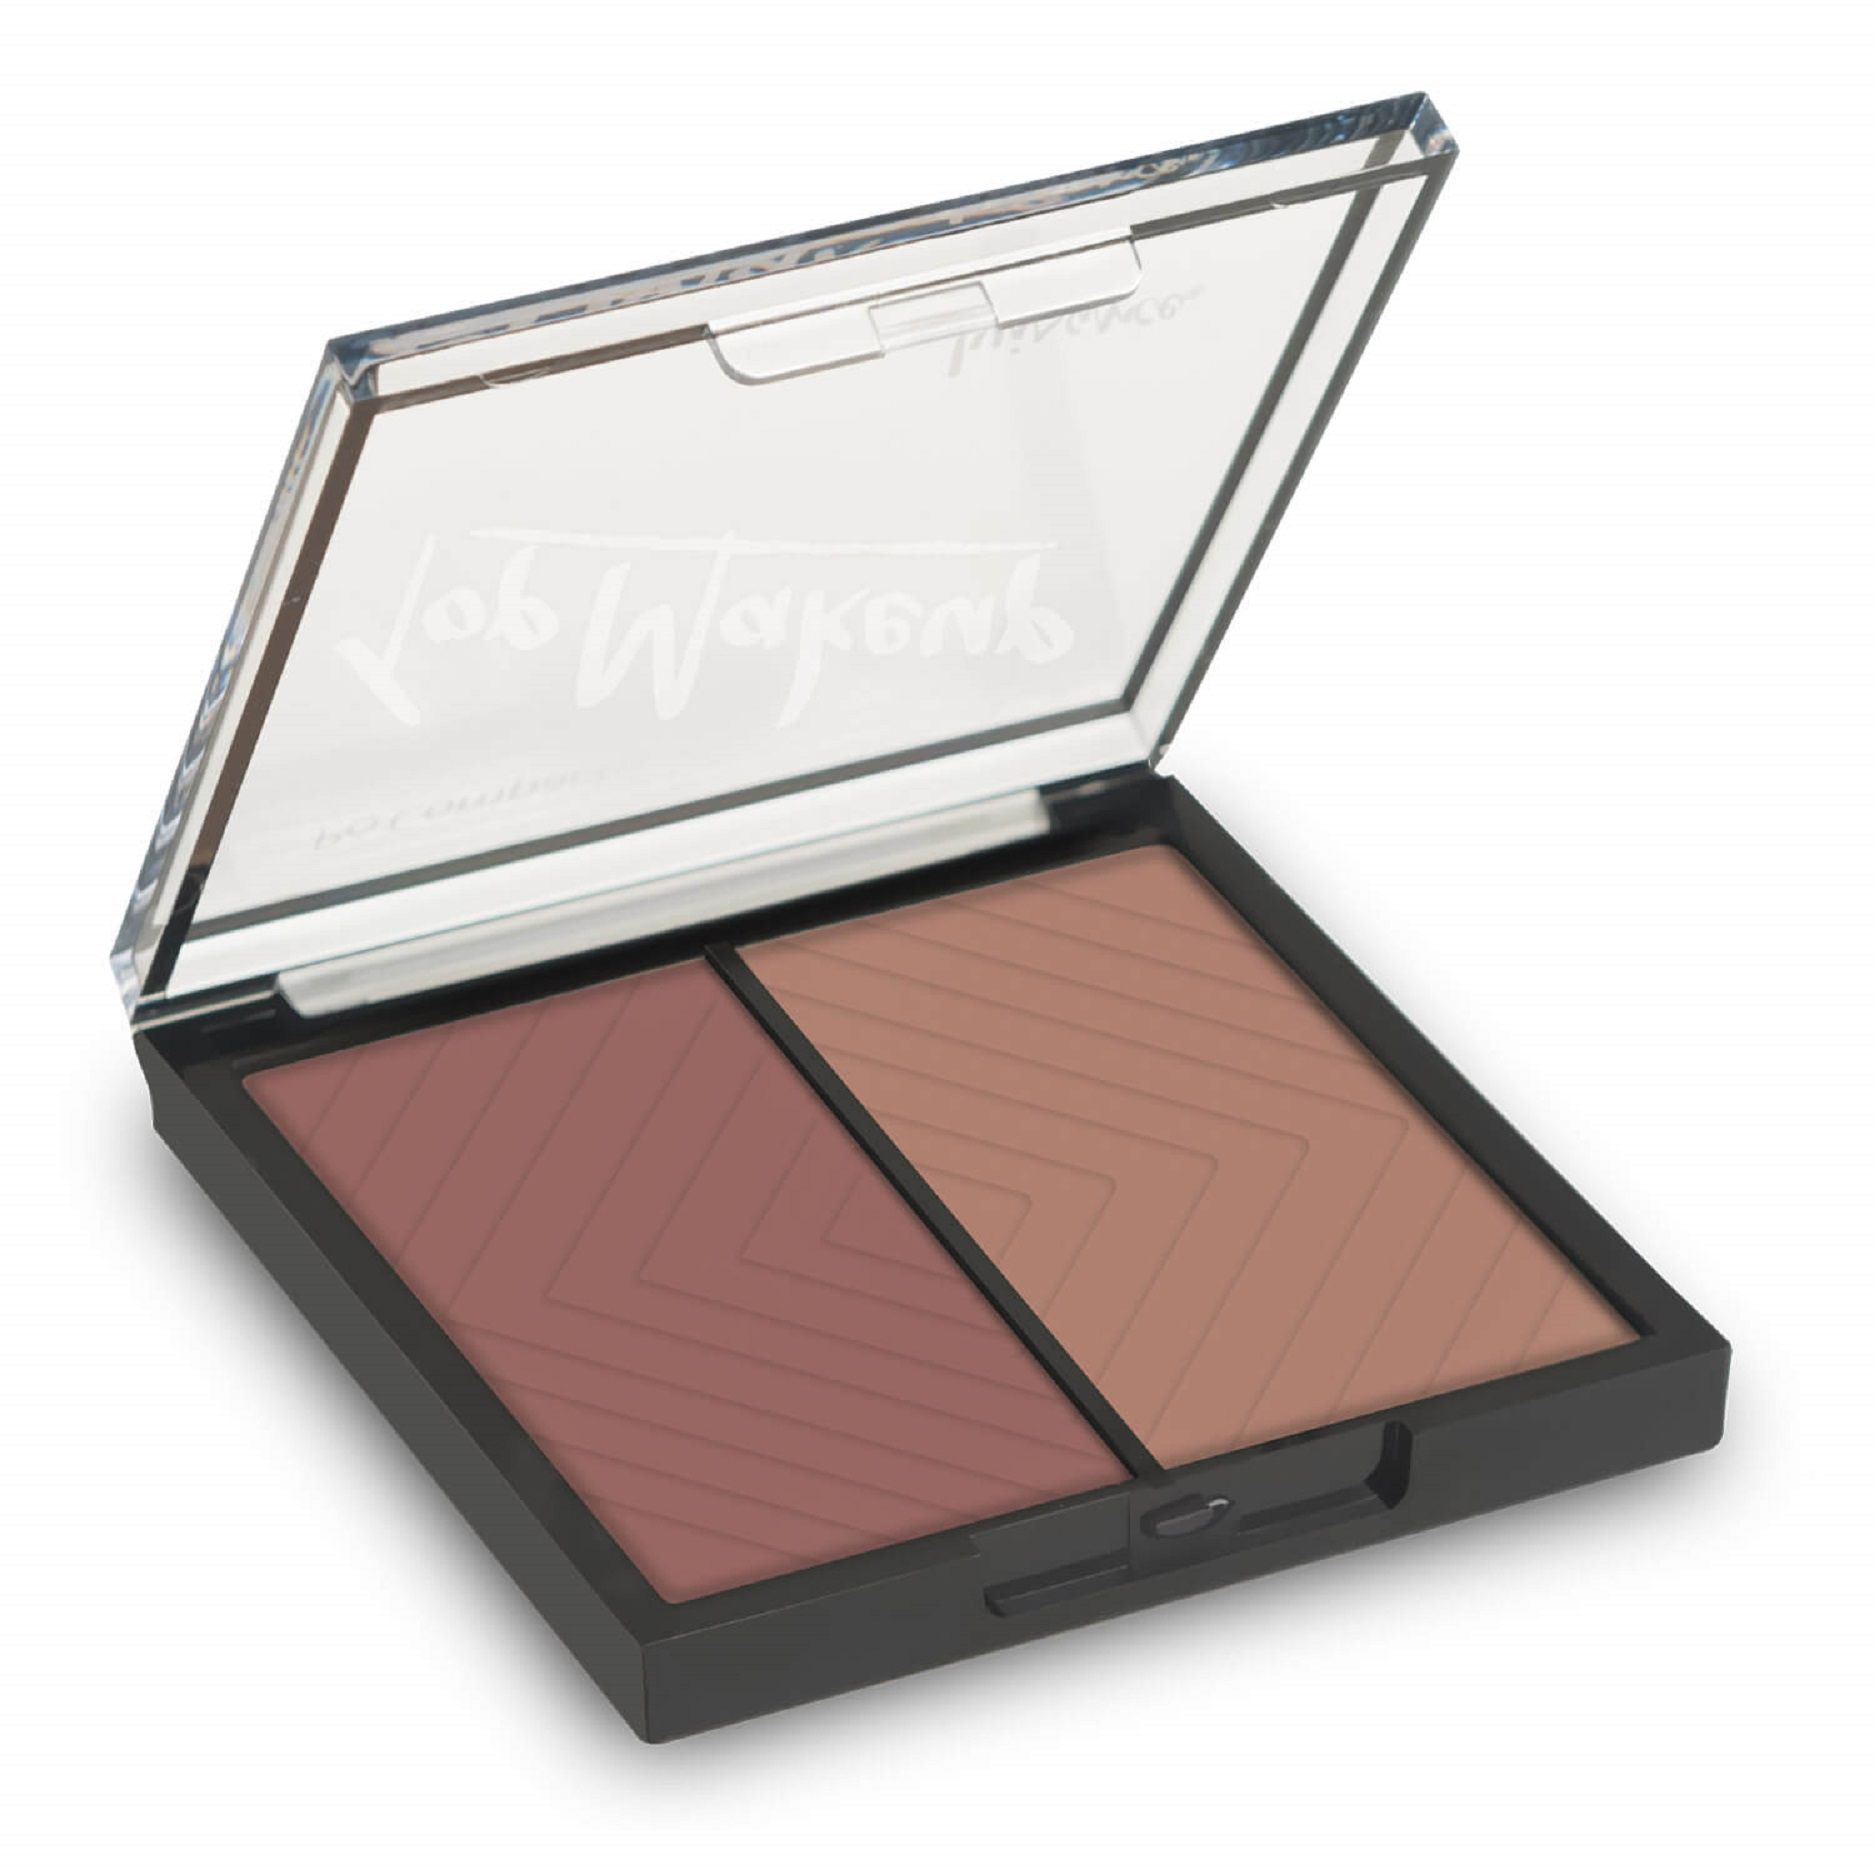 Estojo de Blushes Top Makeup Luisance - L1038 cor C